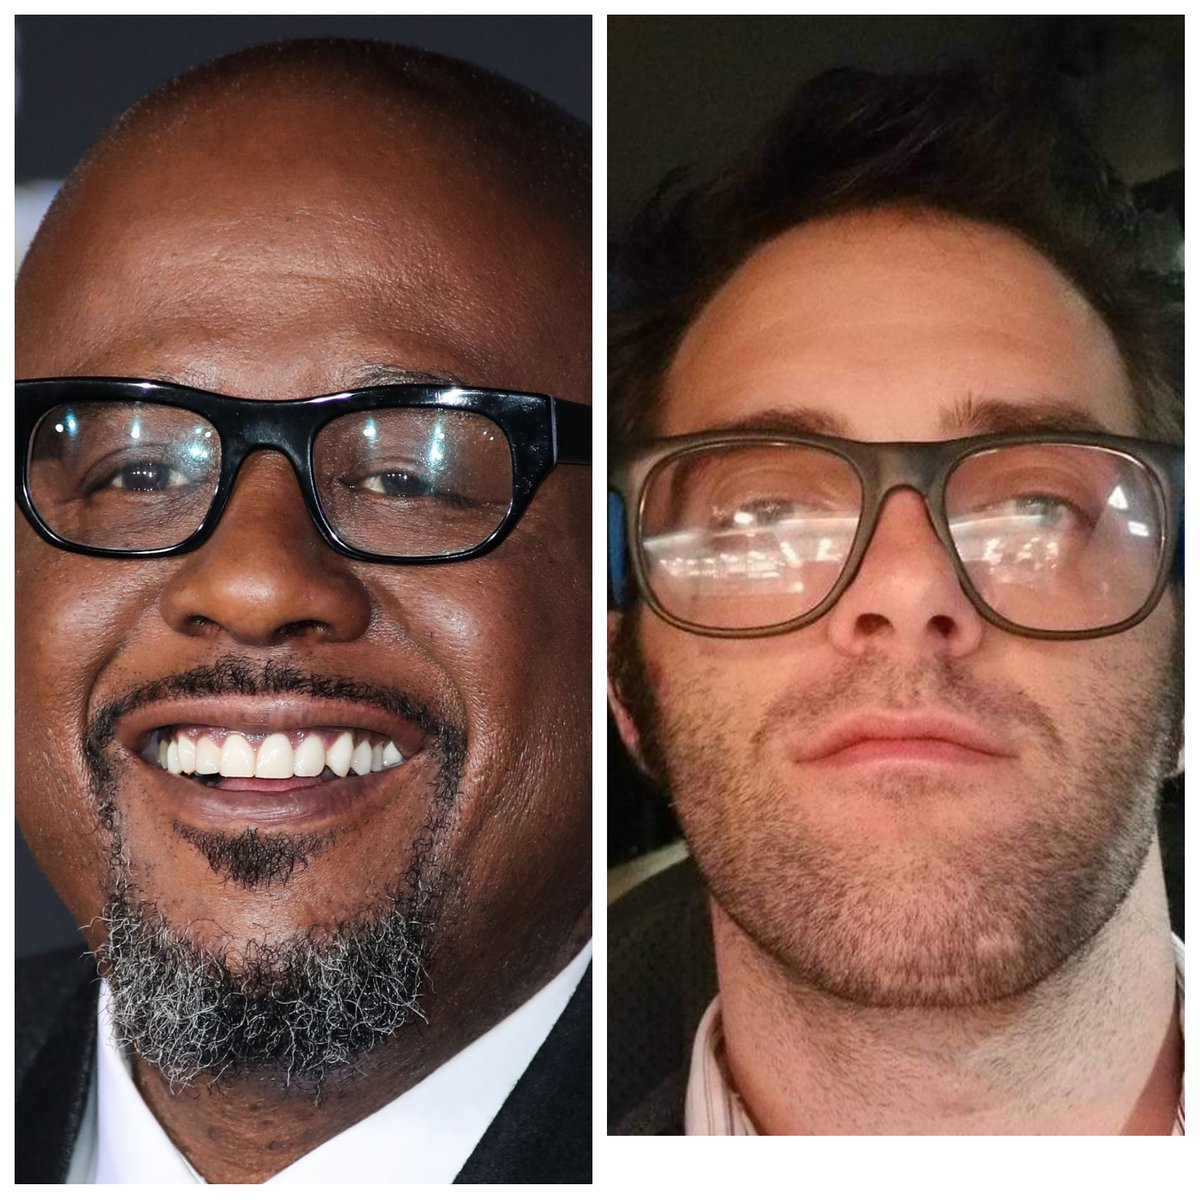 #this  #celebrity  #doppleganger  #challenge  #is  #too  #freaky  #its  #like  #looking  #into  #a  #mirror  #if  #anyone  #knows  @forestwhitaker  #or  #his  #people  #please  #send  #them  #my  #way  #as  #a  #body  #double  #stunt  #double  #dad  #maybe  ?